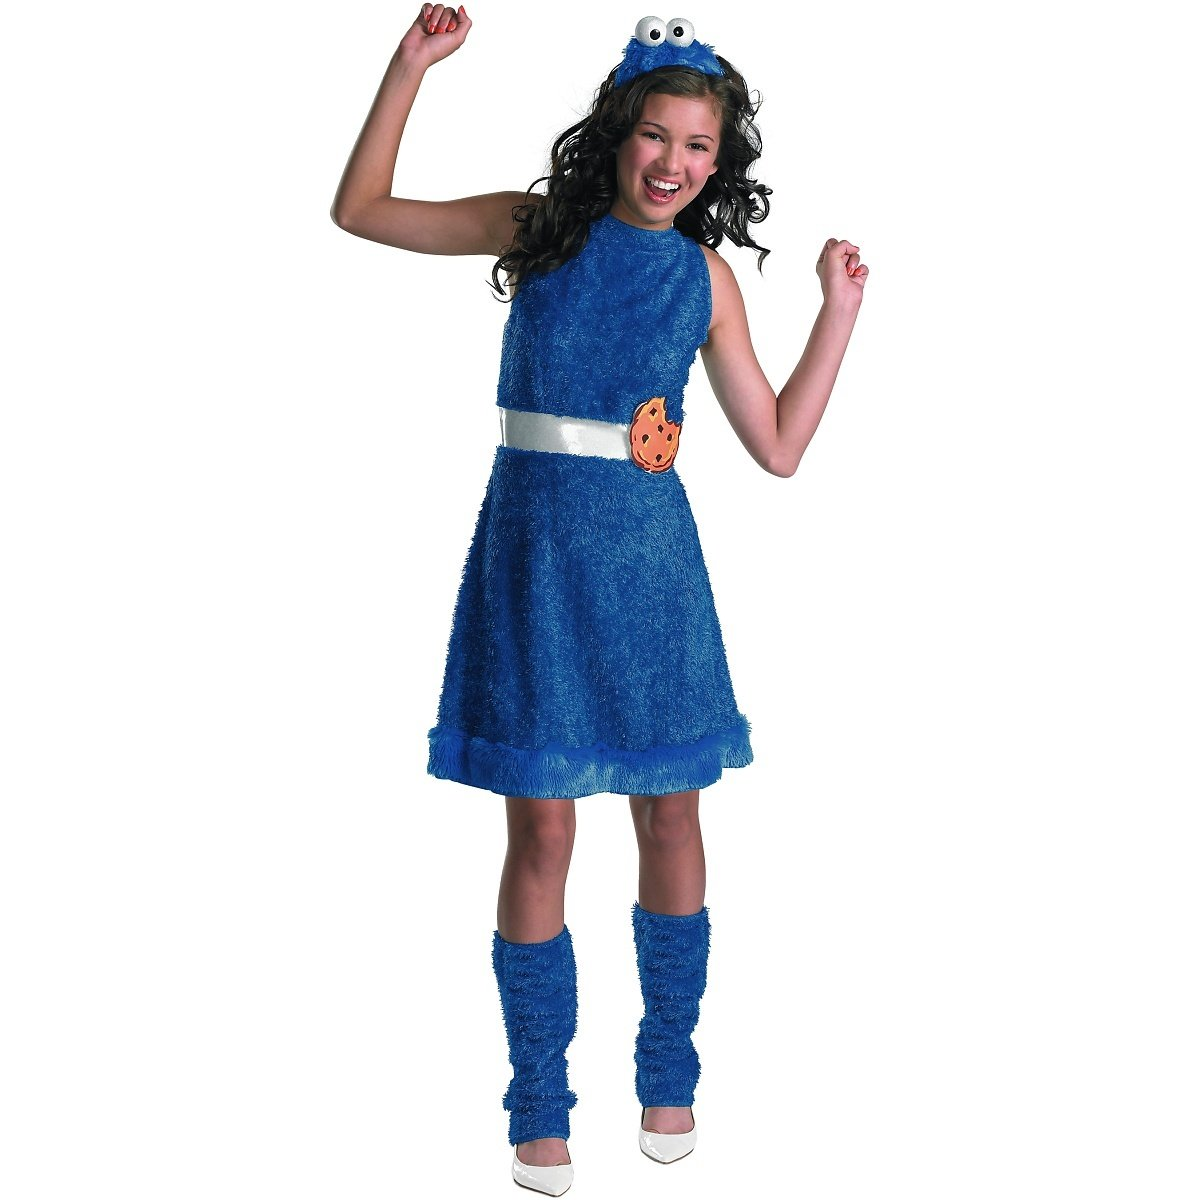 amazoncom sesame street cookie monster teen girls costume x large14 16 toys games - Girls Teen Halloween Costumes